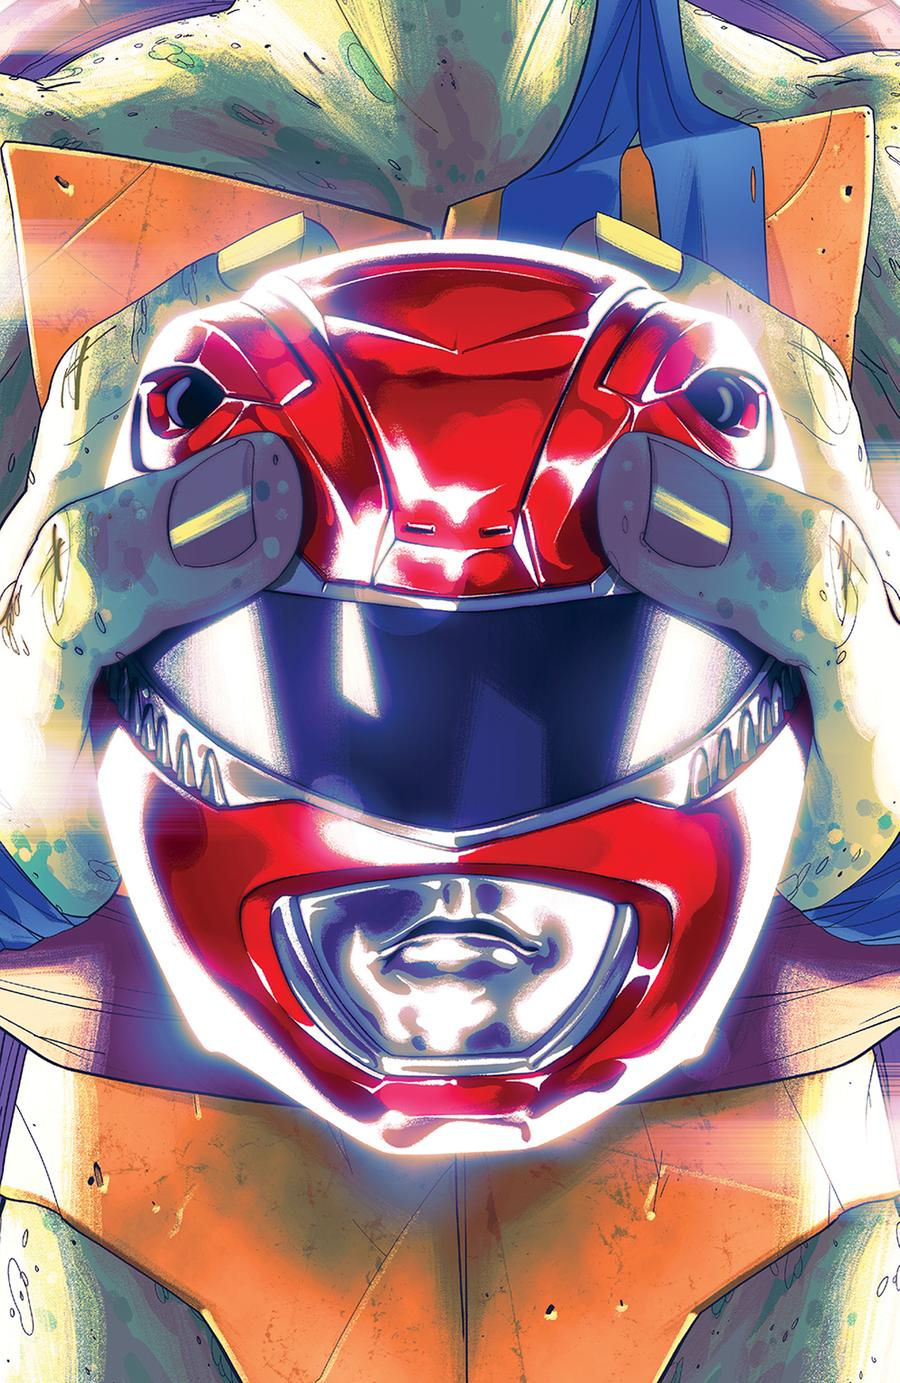 Mighty Morphin Power Rangers Teenage Mutant Ninja Turtles #1 Cover D Variant Goni Montes Cover